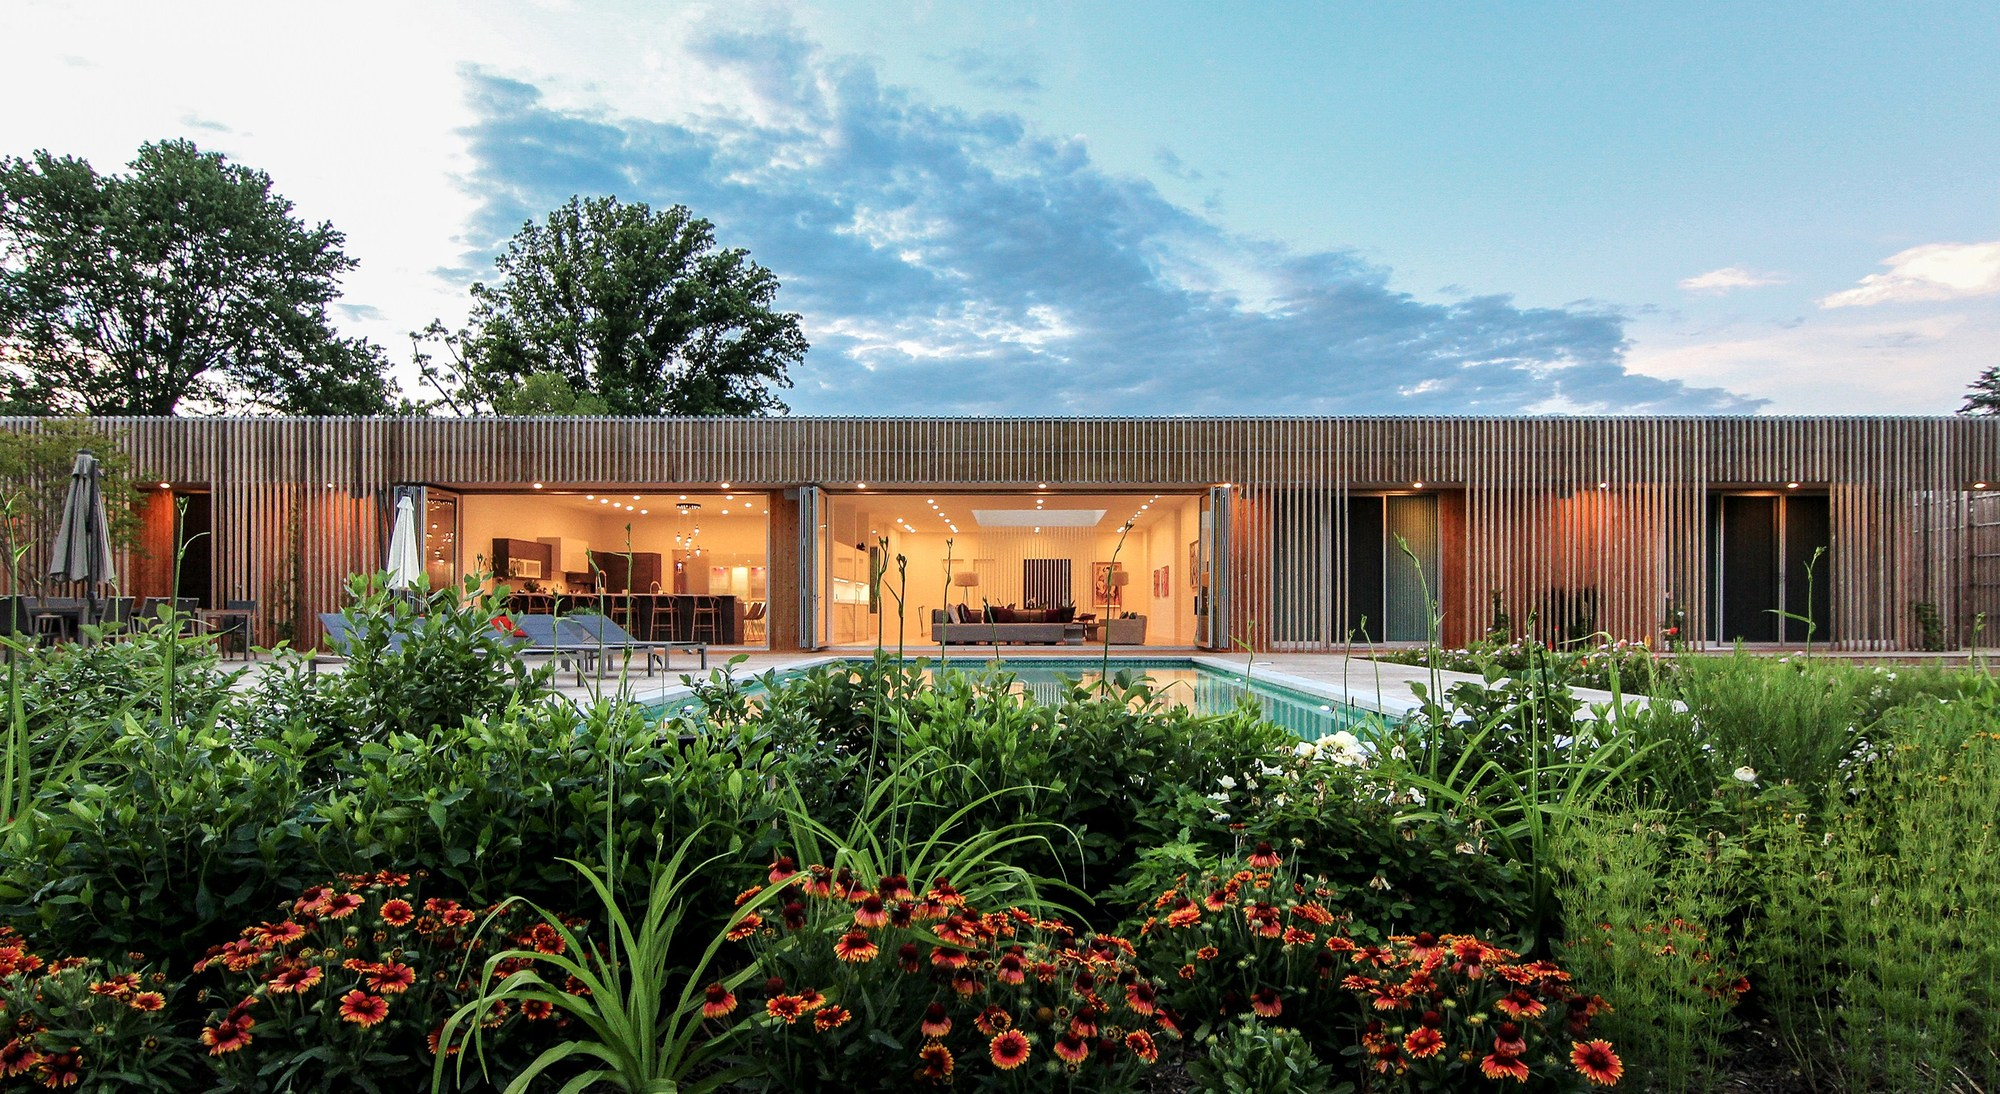 Meadow House  Office Mian Ye  ArchDaily